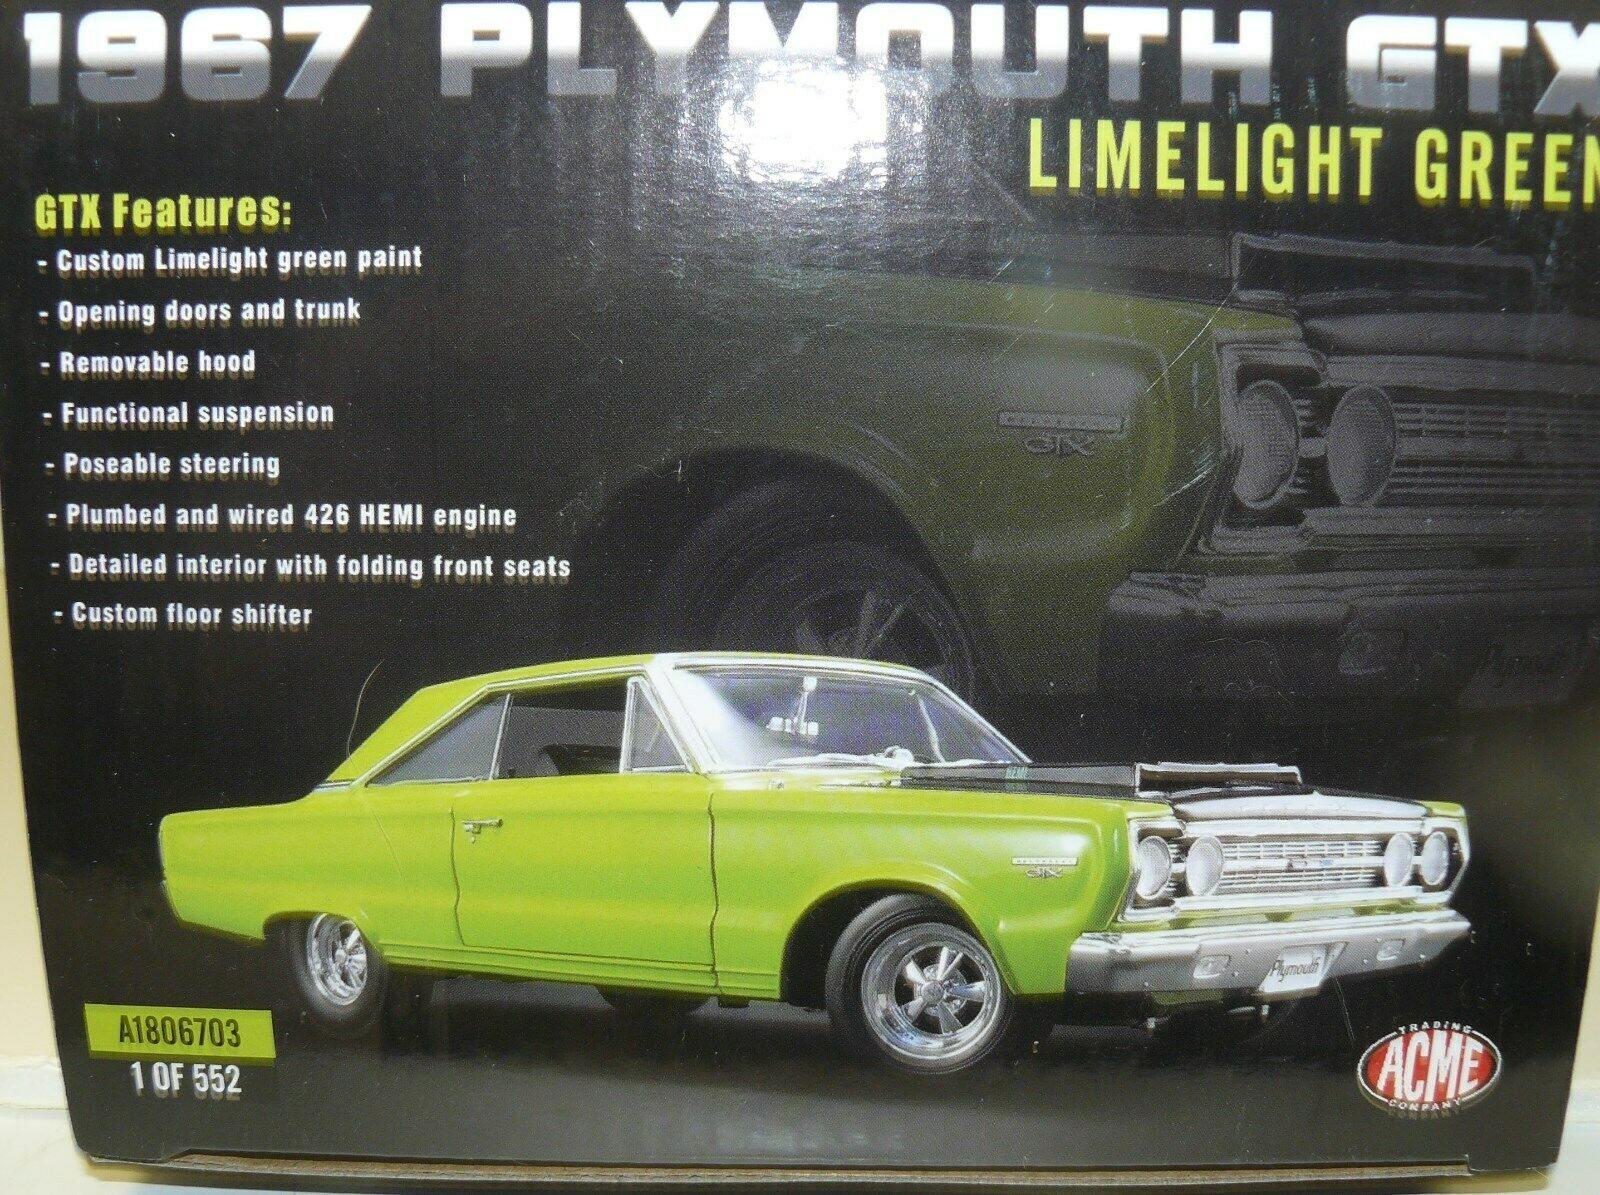 in linea 1 18, 1967 Plymouth GTX, Limelight verde verde verde ,  279 of 552 , the master cylinder  fantastica qualità